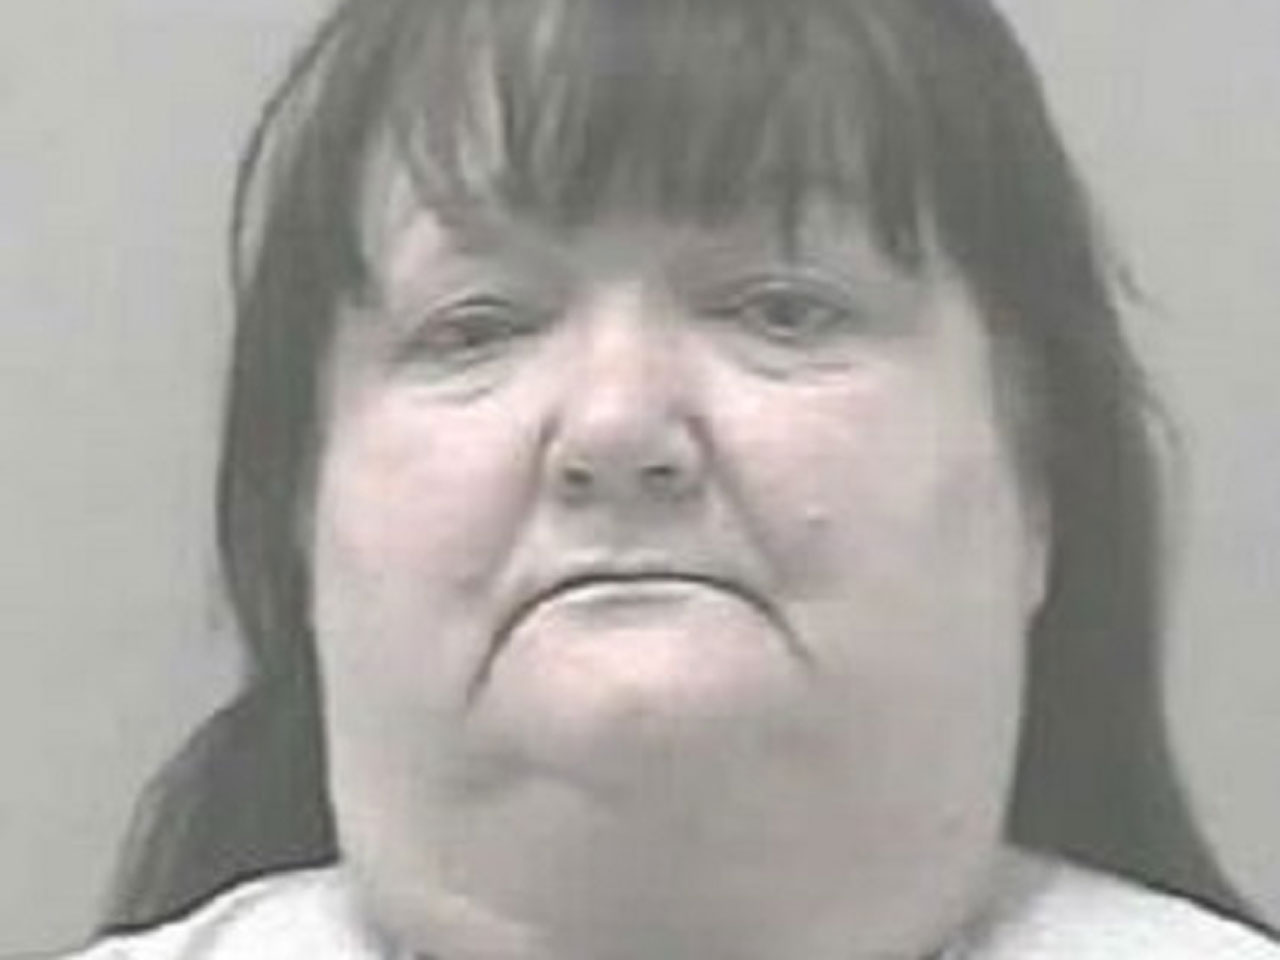 Wanda Kiser, W Va woman, to be charged after unidentified remains